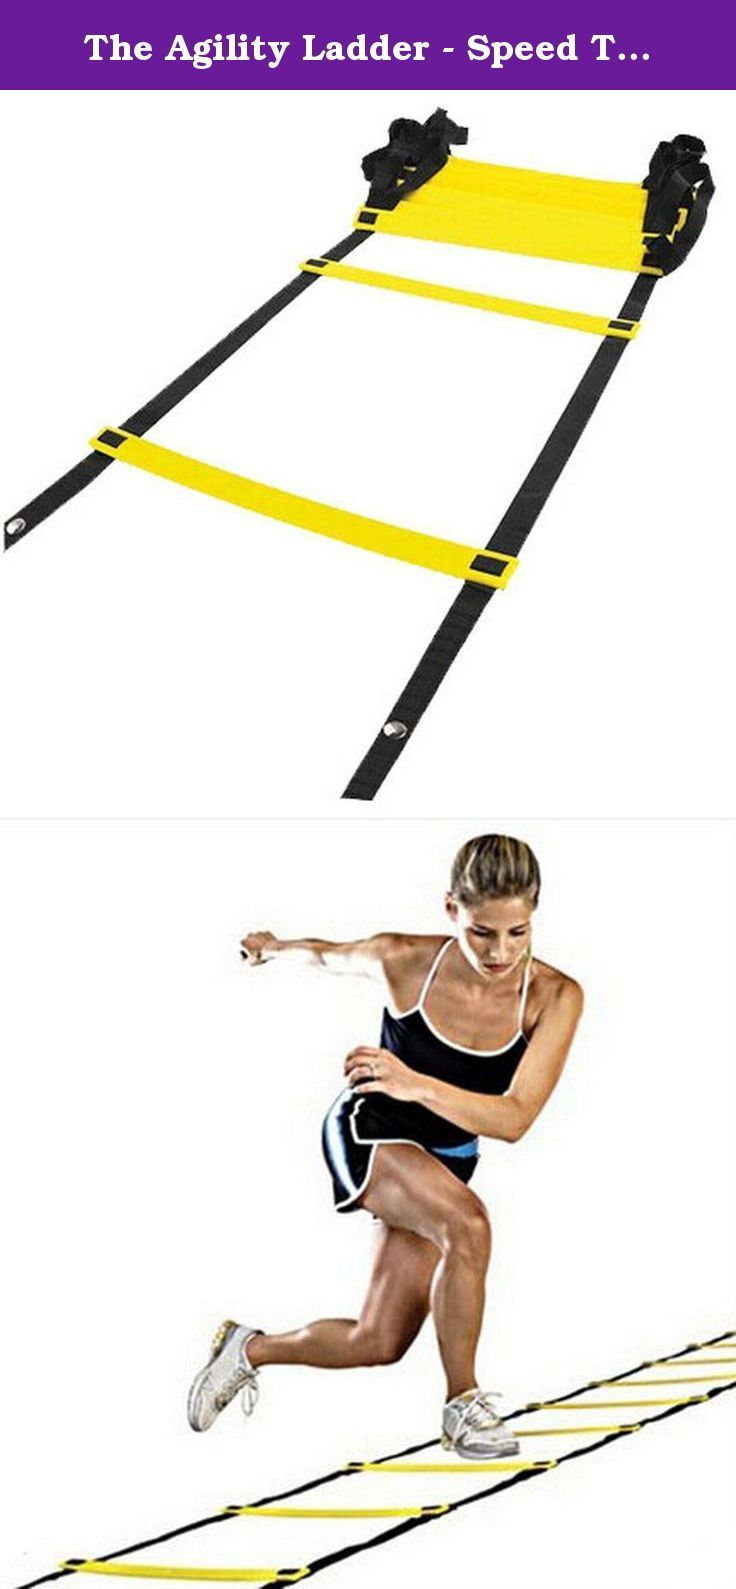 The Agility Ladder - Speed Training, Step Ladder - Football Cadence Training. Ships from HongKong.Function: enhance the flexibility of the body. Size: 4.8 m /9 festival. Color: dark red / yellow. Material: PP material / ribbon.